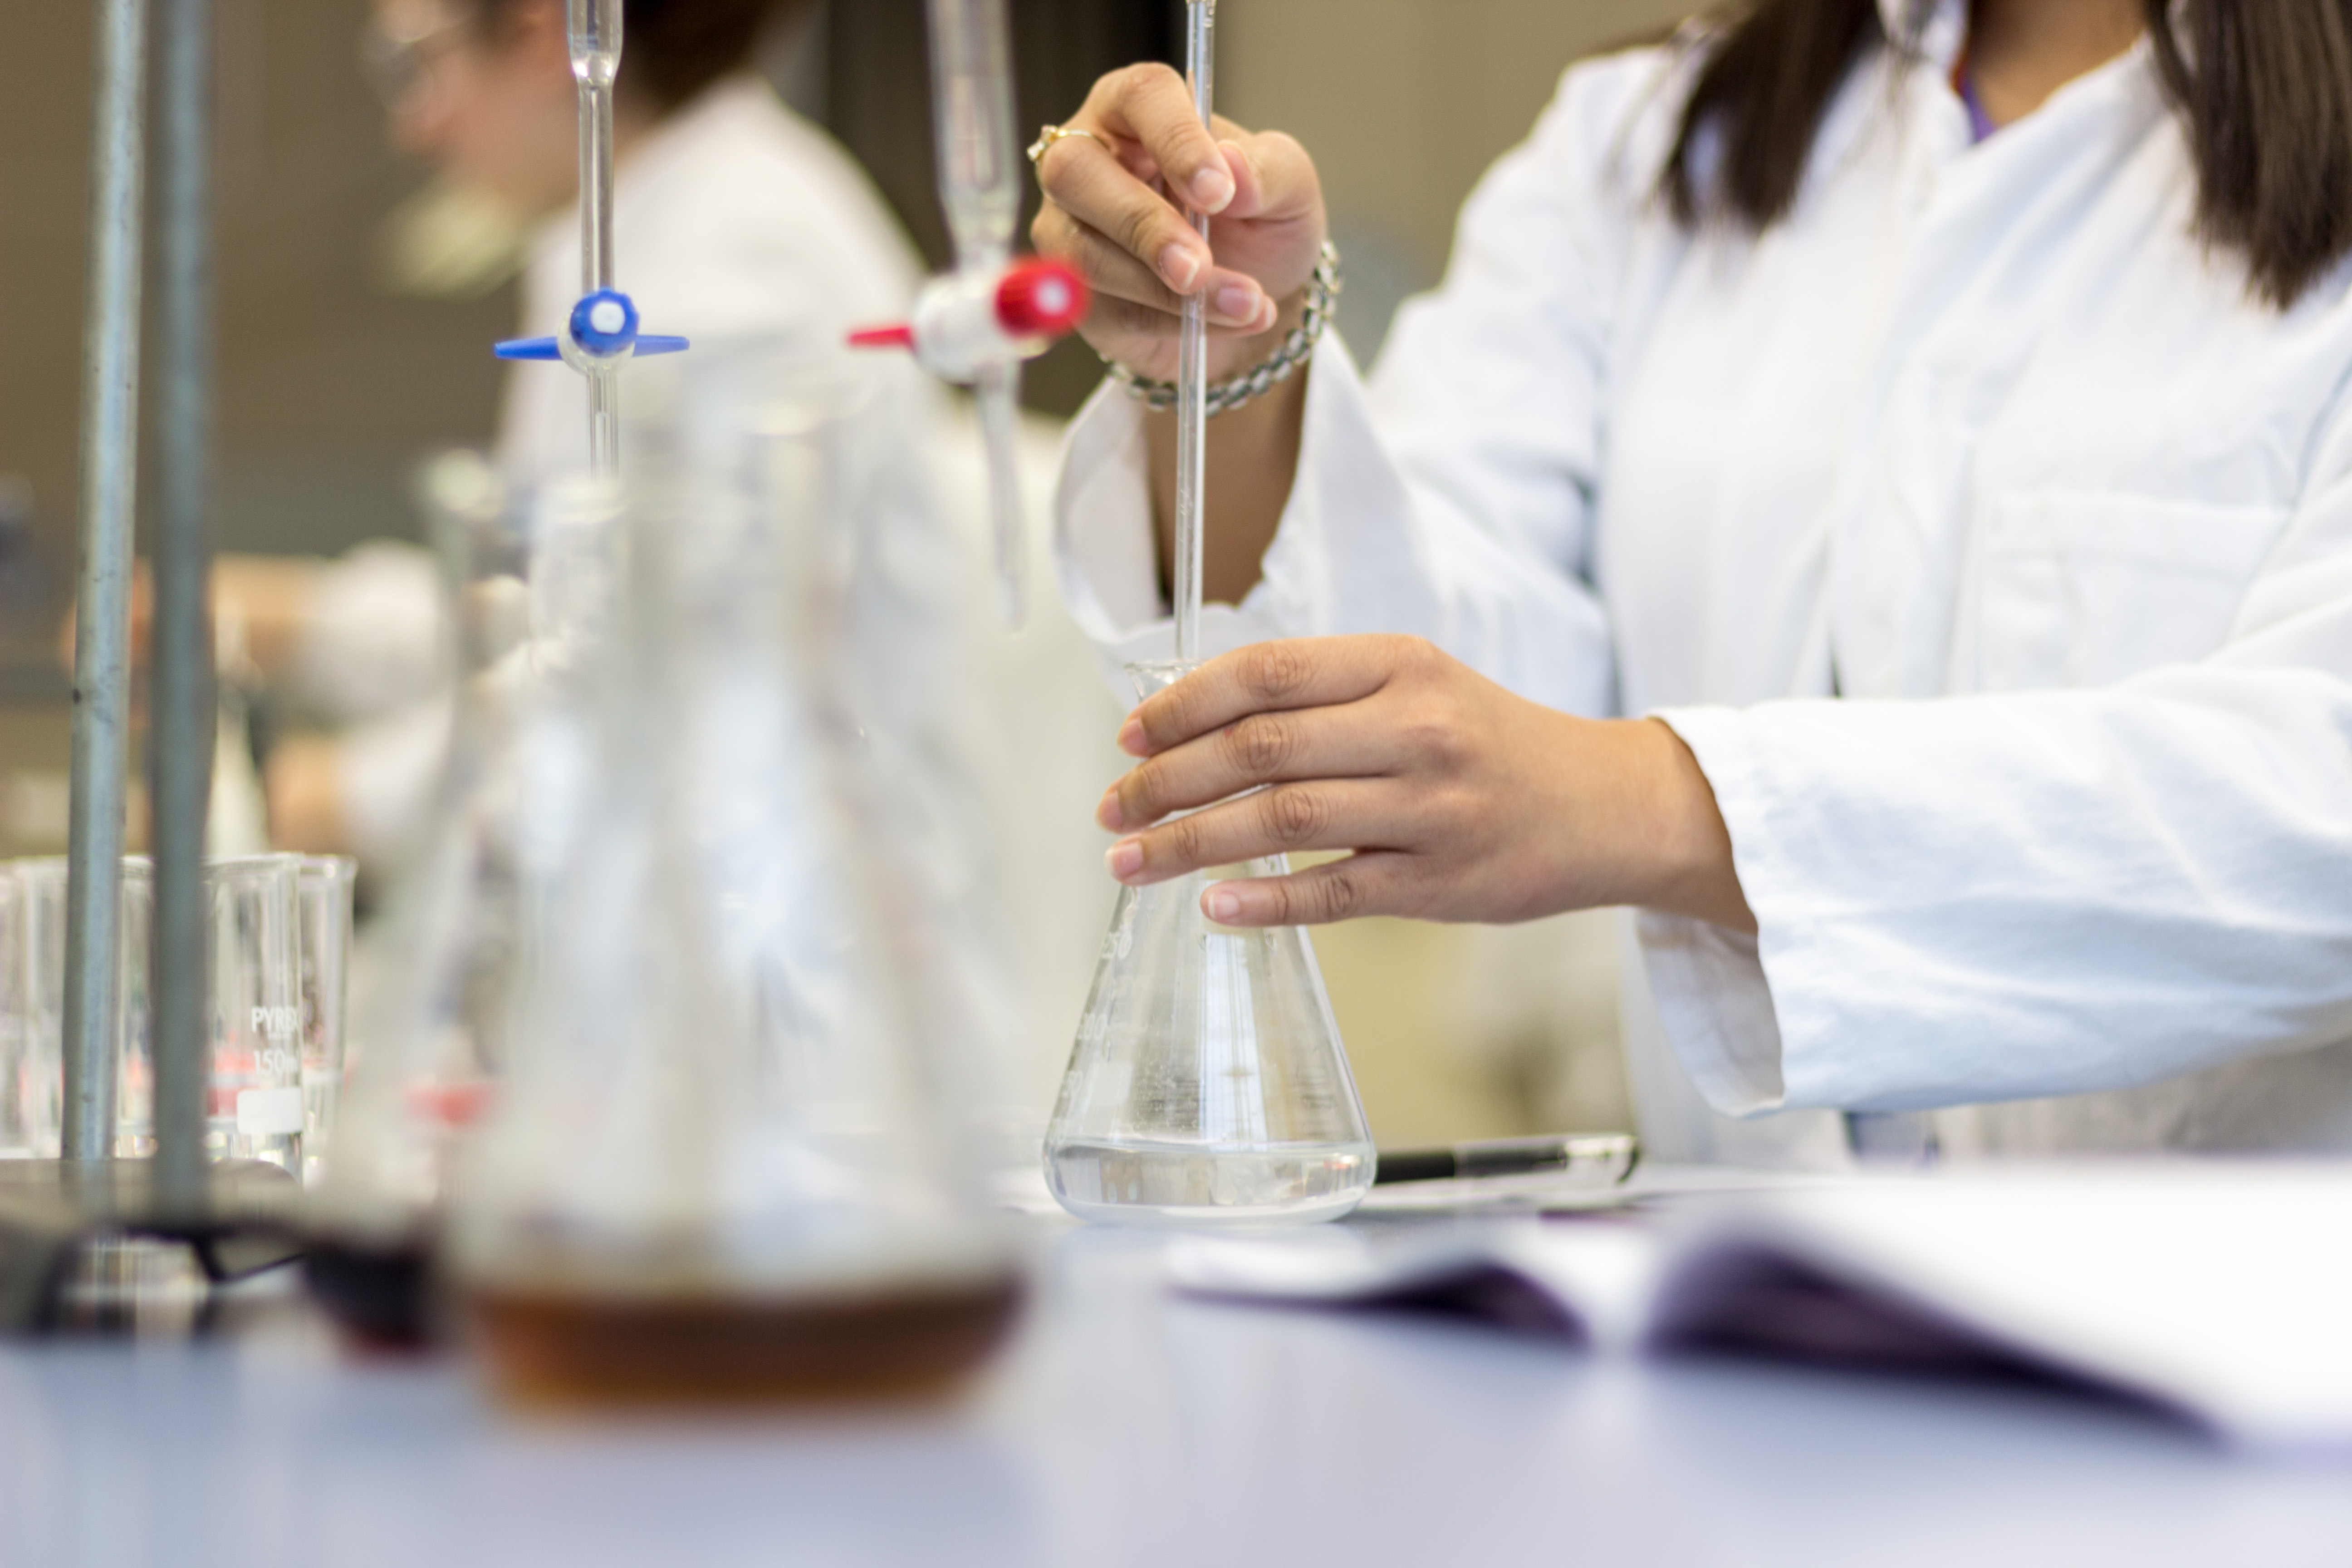 Girls working in the Science laboratory pouring chemicals